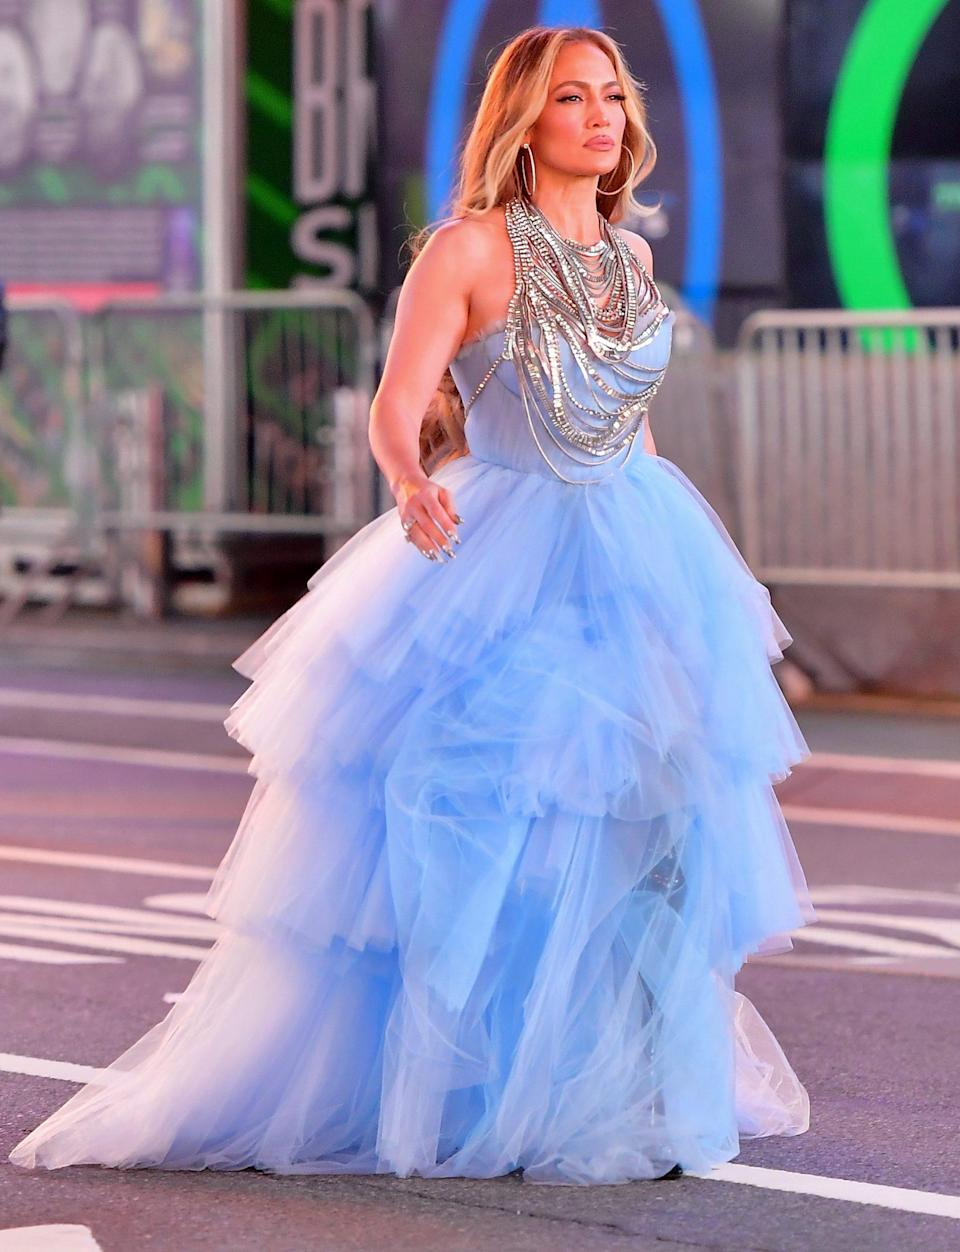 <p>A dressed-up Jennifer Lopez films a segment for ABC's <em>Dick Clark's New Year's Rockin' Eve</em> on Wednesday night in N.Y.C.'s Times Square.</p>